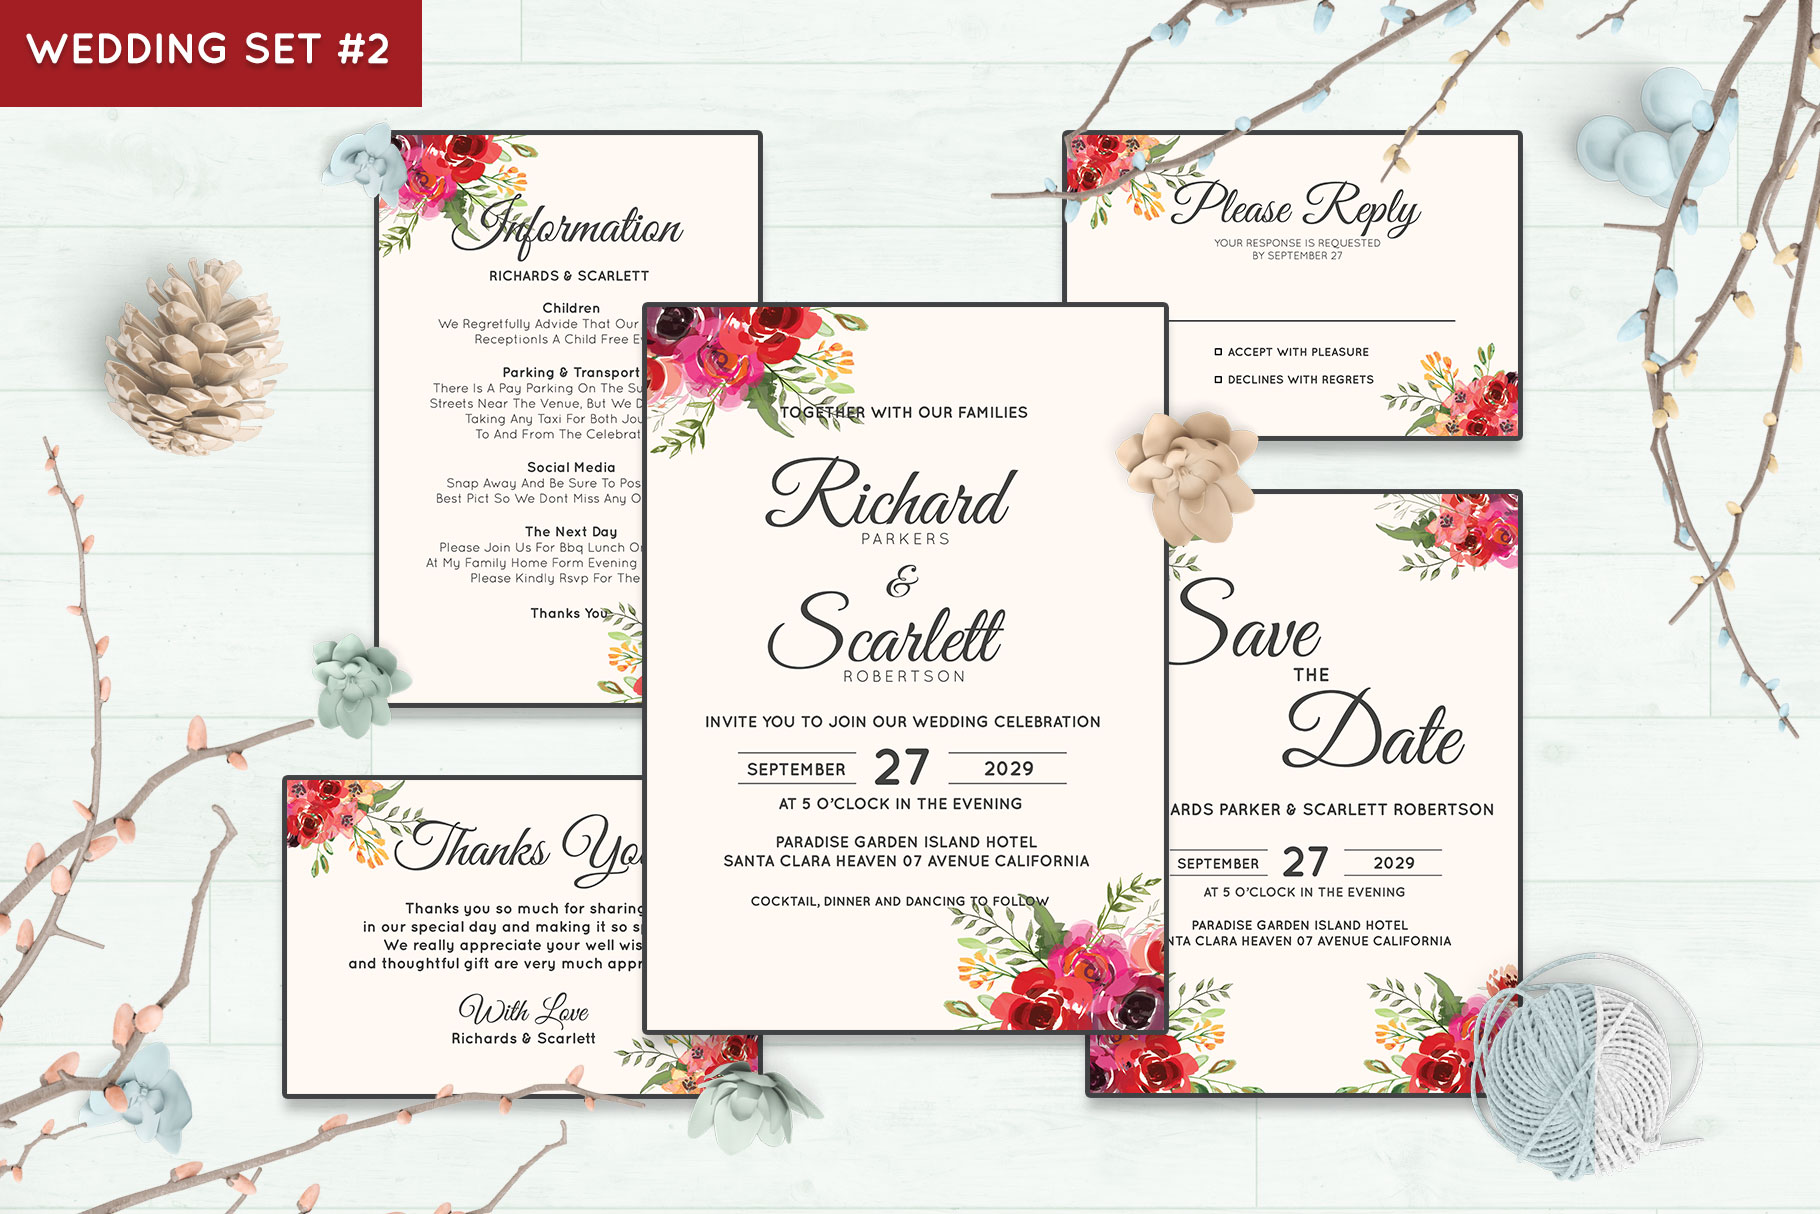 Wedding Invitation Set #2 Watercolor Floral Flower Style example image 1